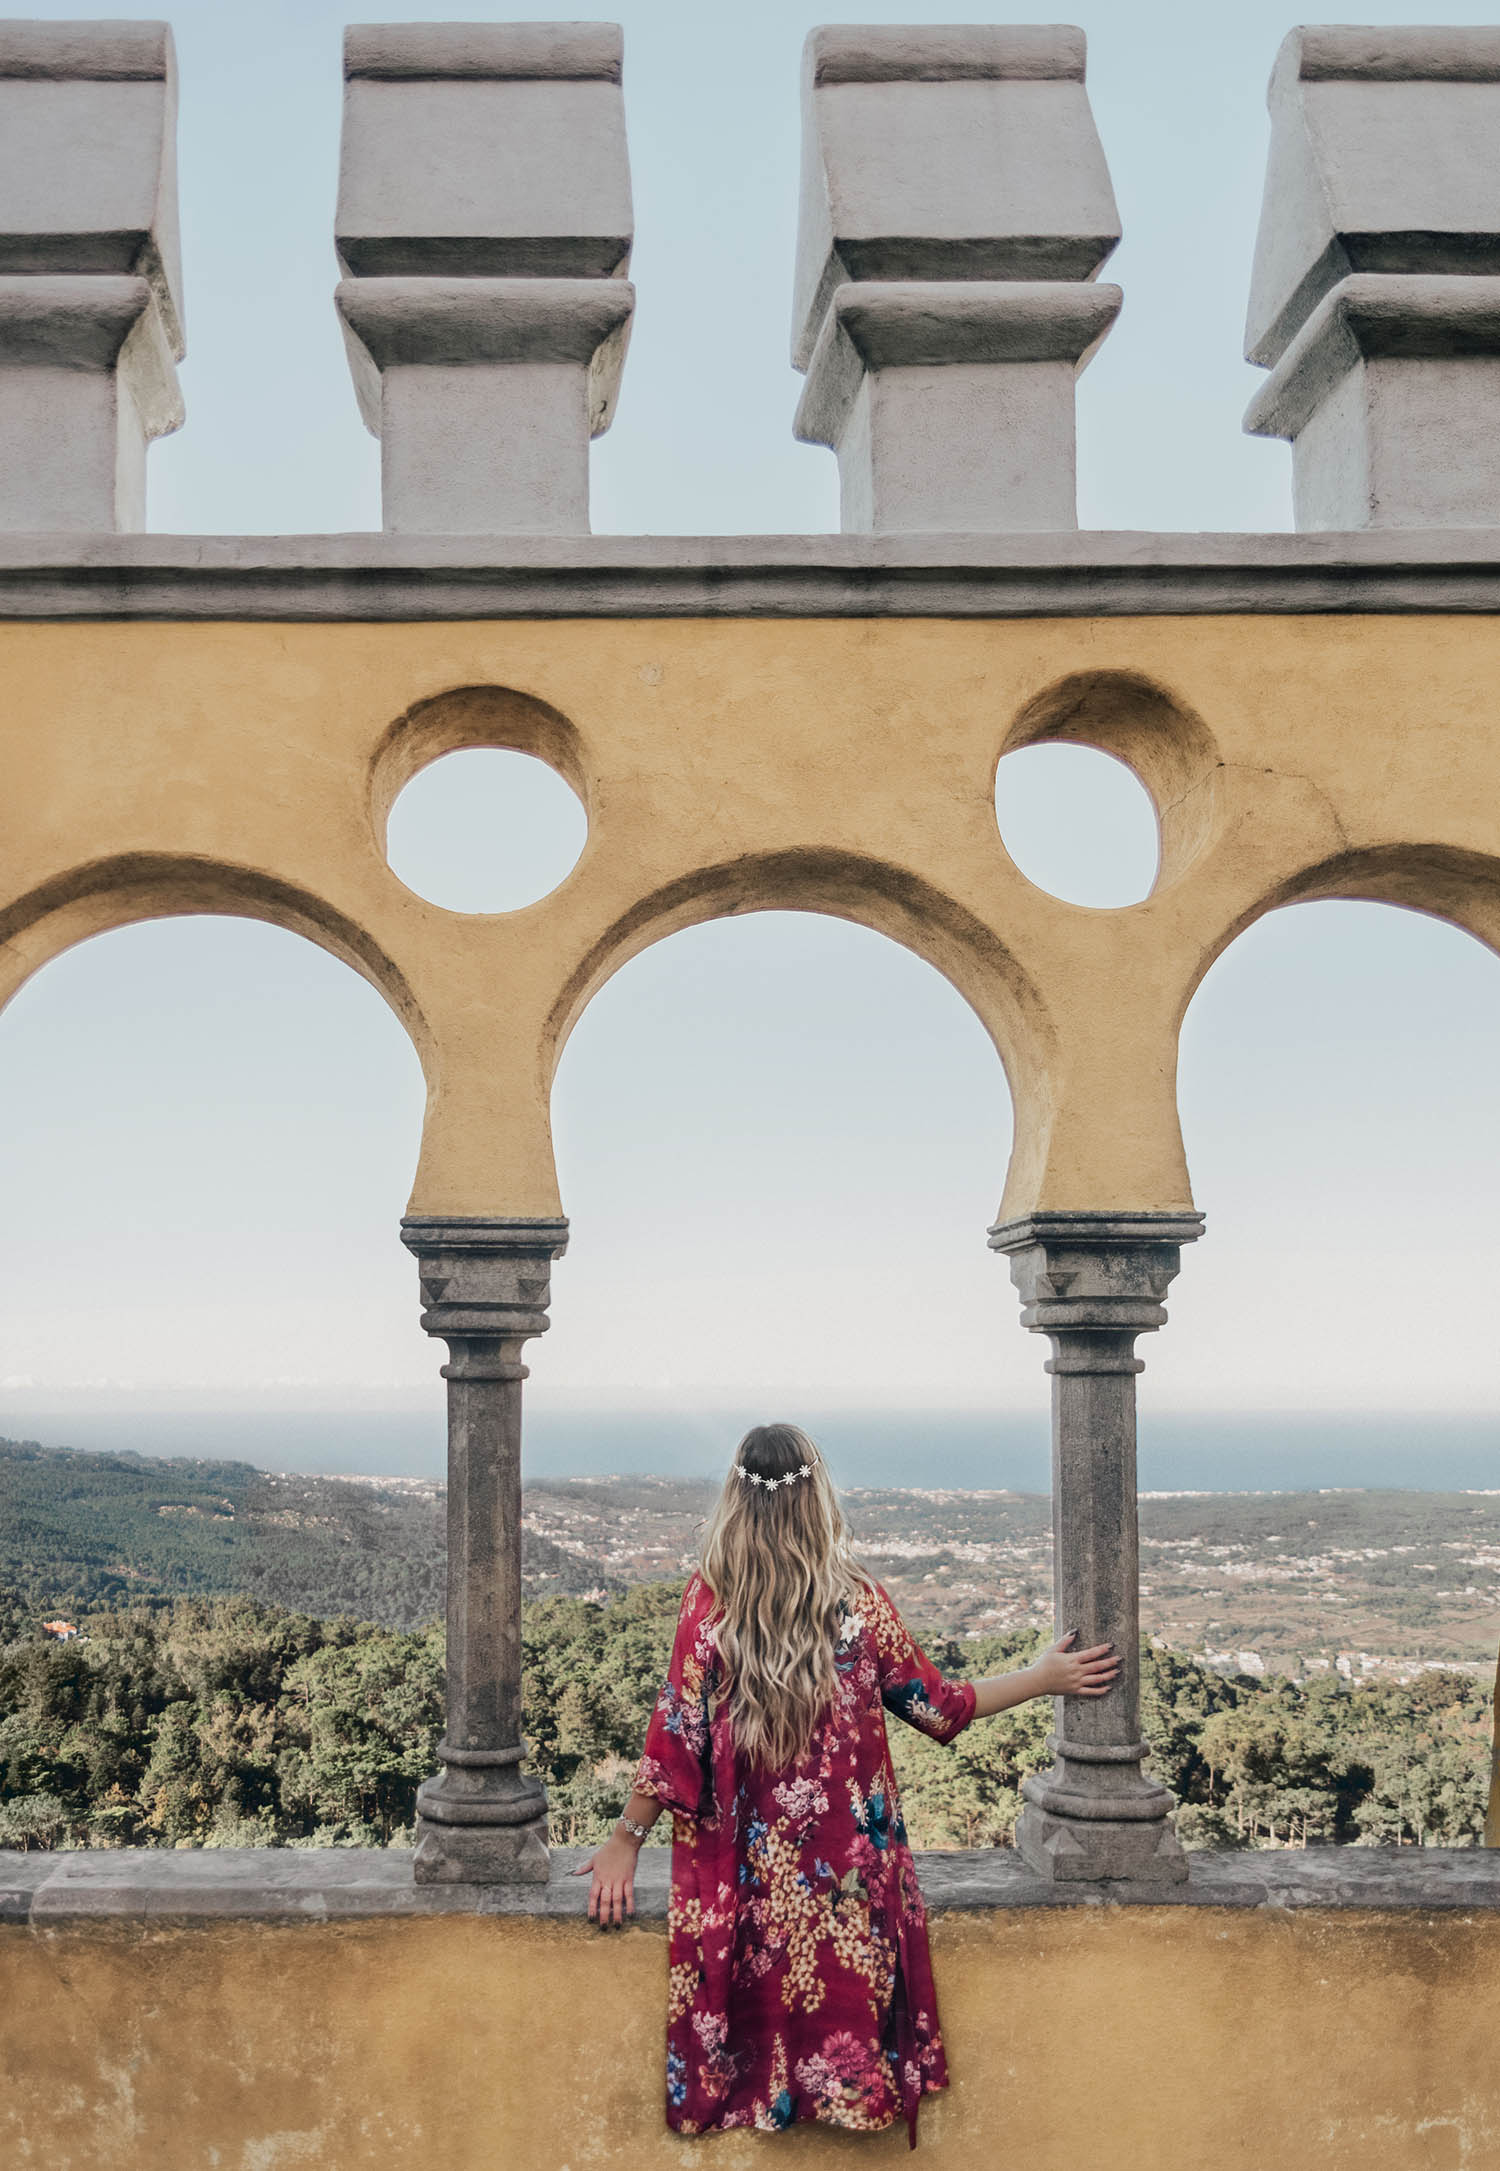 Adaras at Pena Palace in Sintra, Portugal